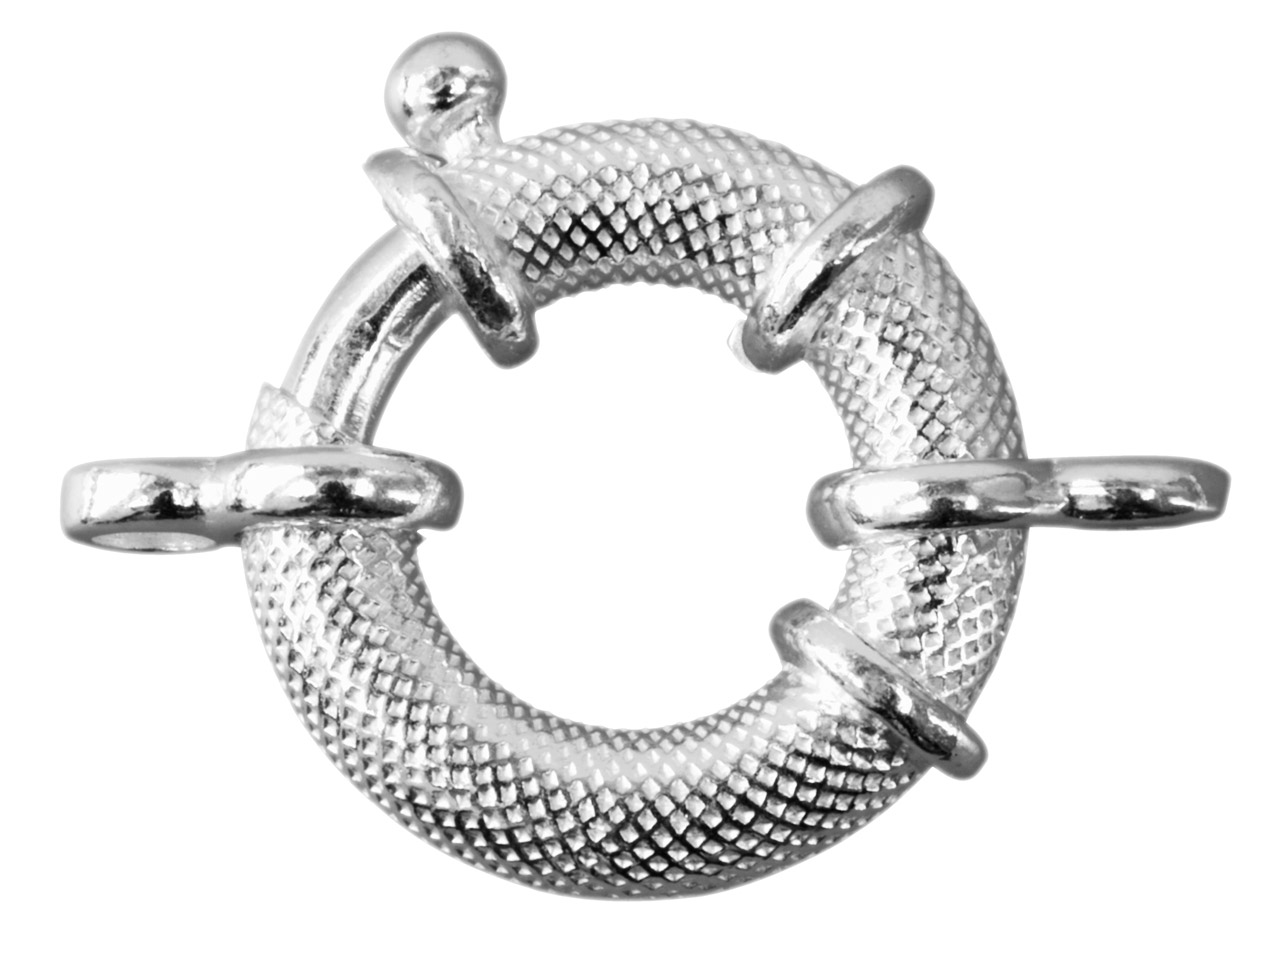 Sterling Silver Jumbo Bolt Ring     19mm, With 2 Figure Of 8 Jump Rings Textured Finish